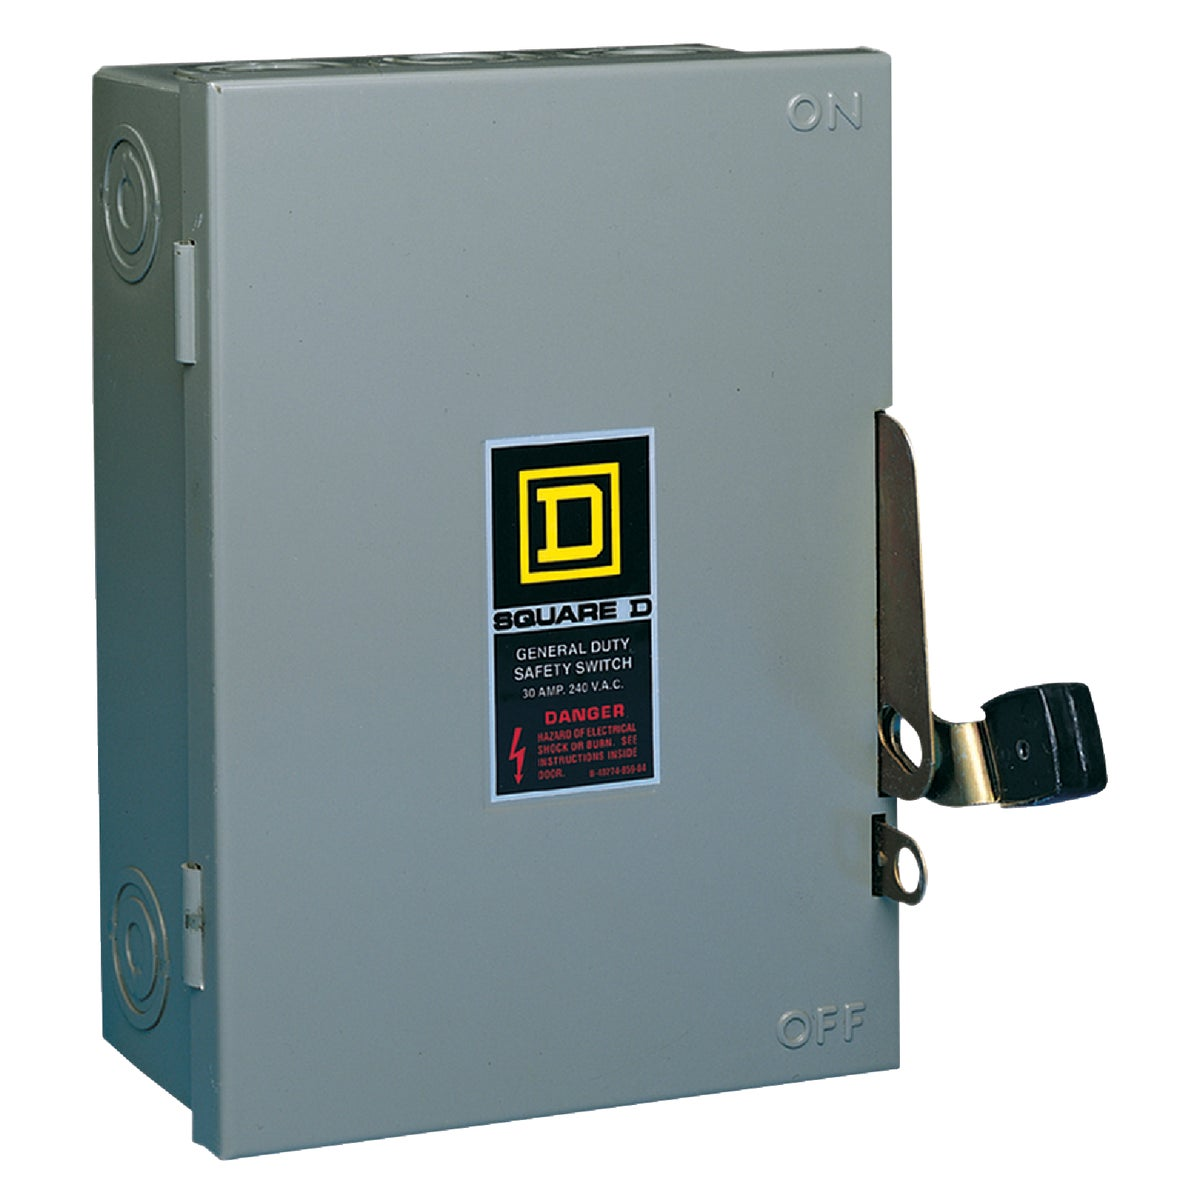 30A SAFETY SWITCH - D211NCP by Square D Co